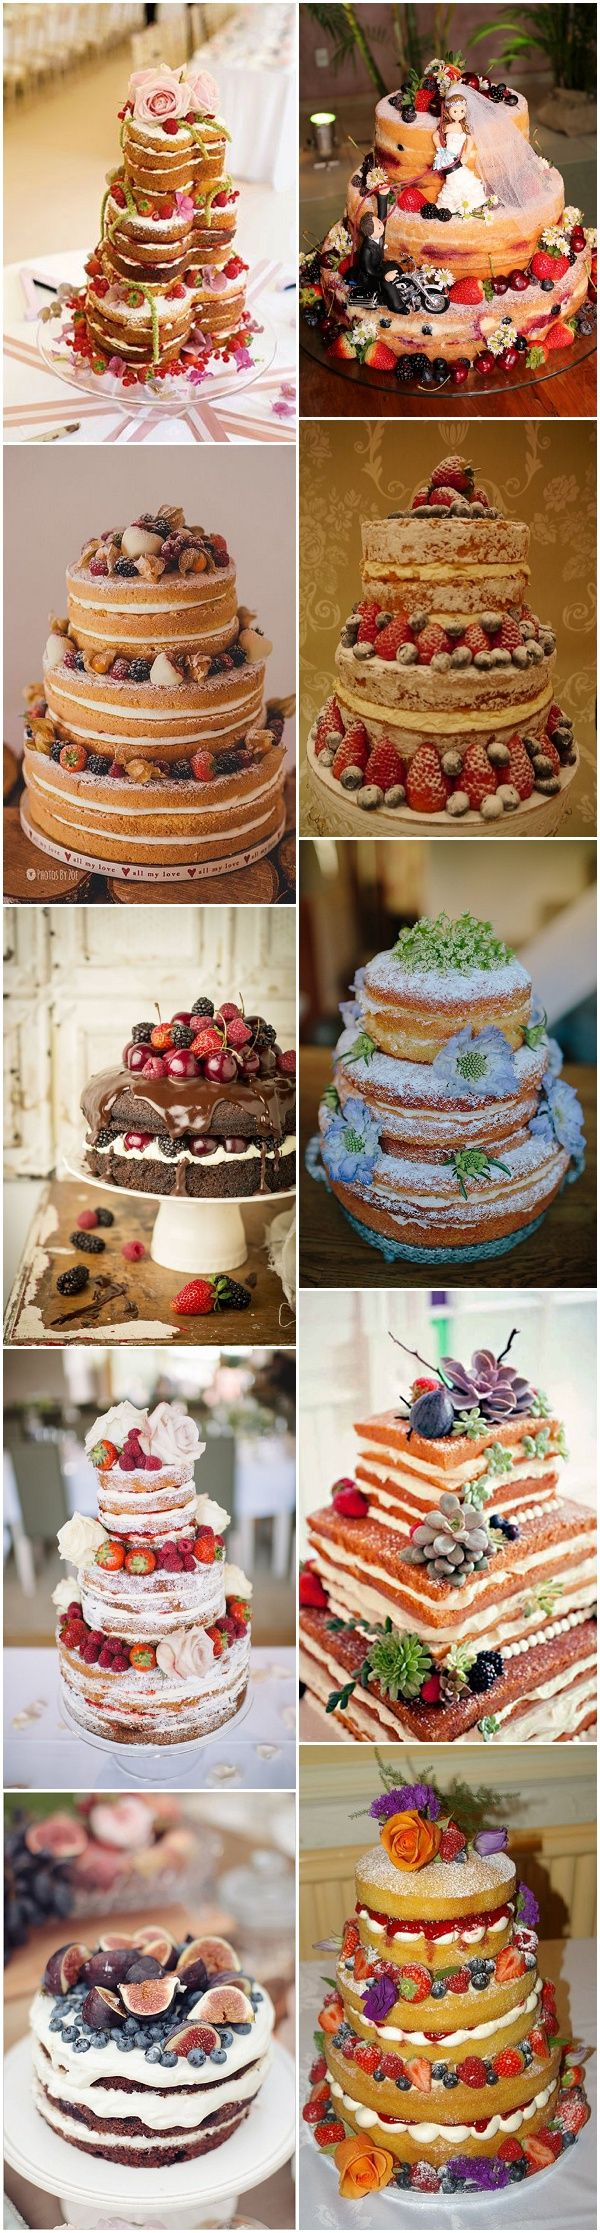 "Naked Cakes-I love this!  I don't like icing and I'm not a huge cake fan, but if I have to have a wedding cake, I do like the ""naked cake"" concept."